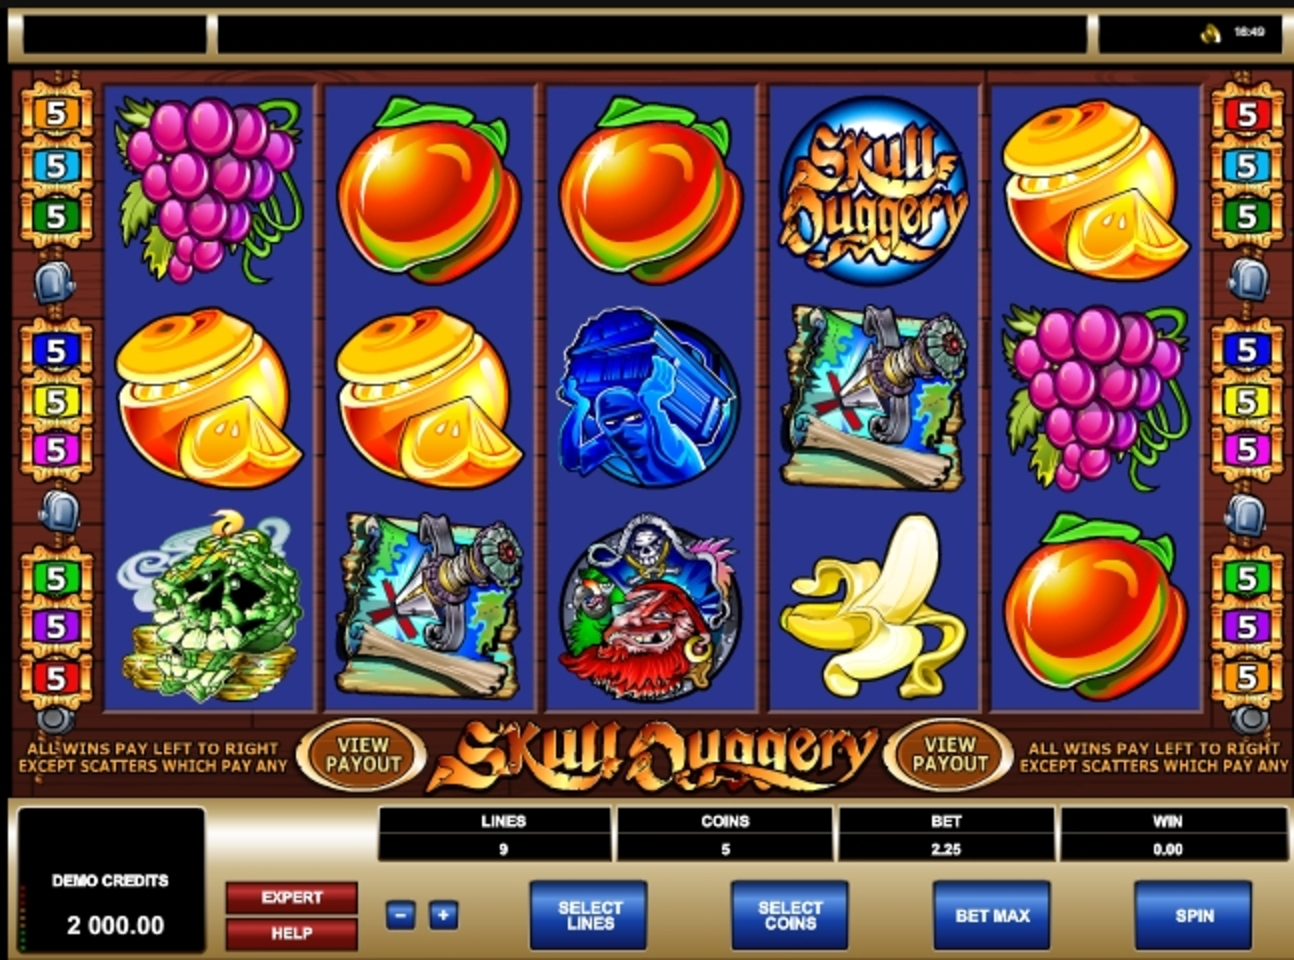 Reels in Skull Duggery Slot Game by Microgaming